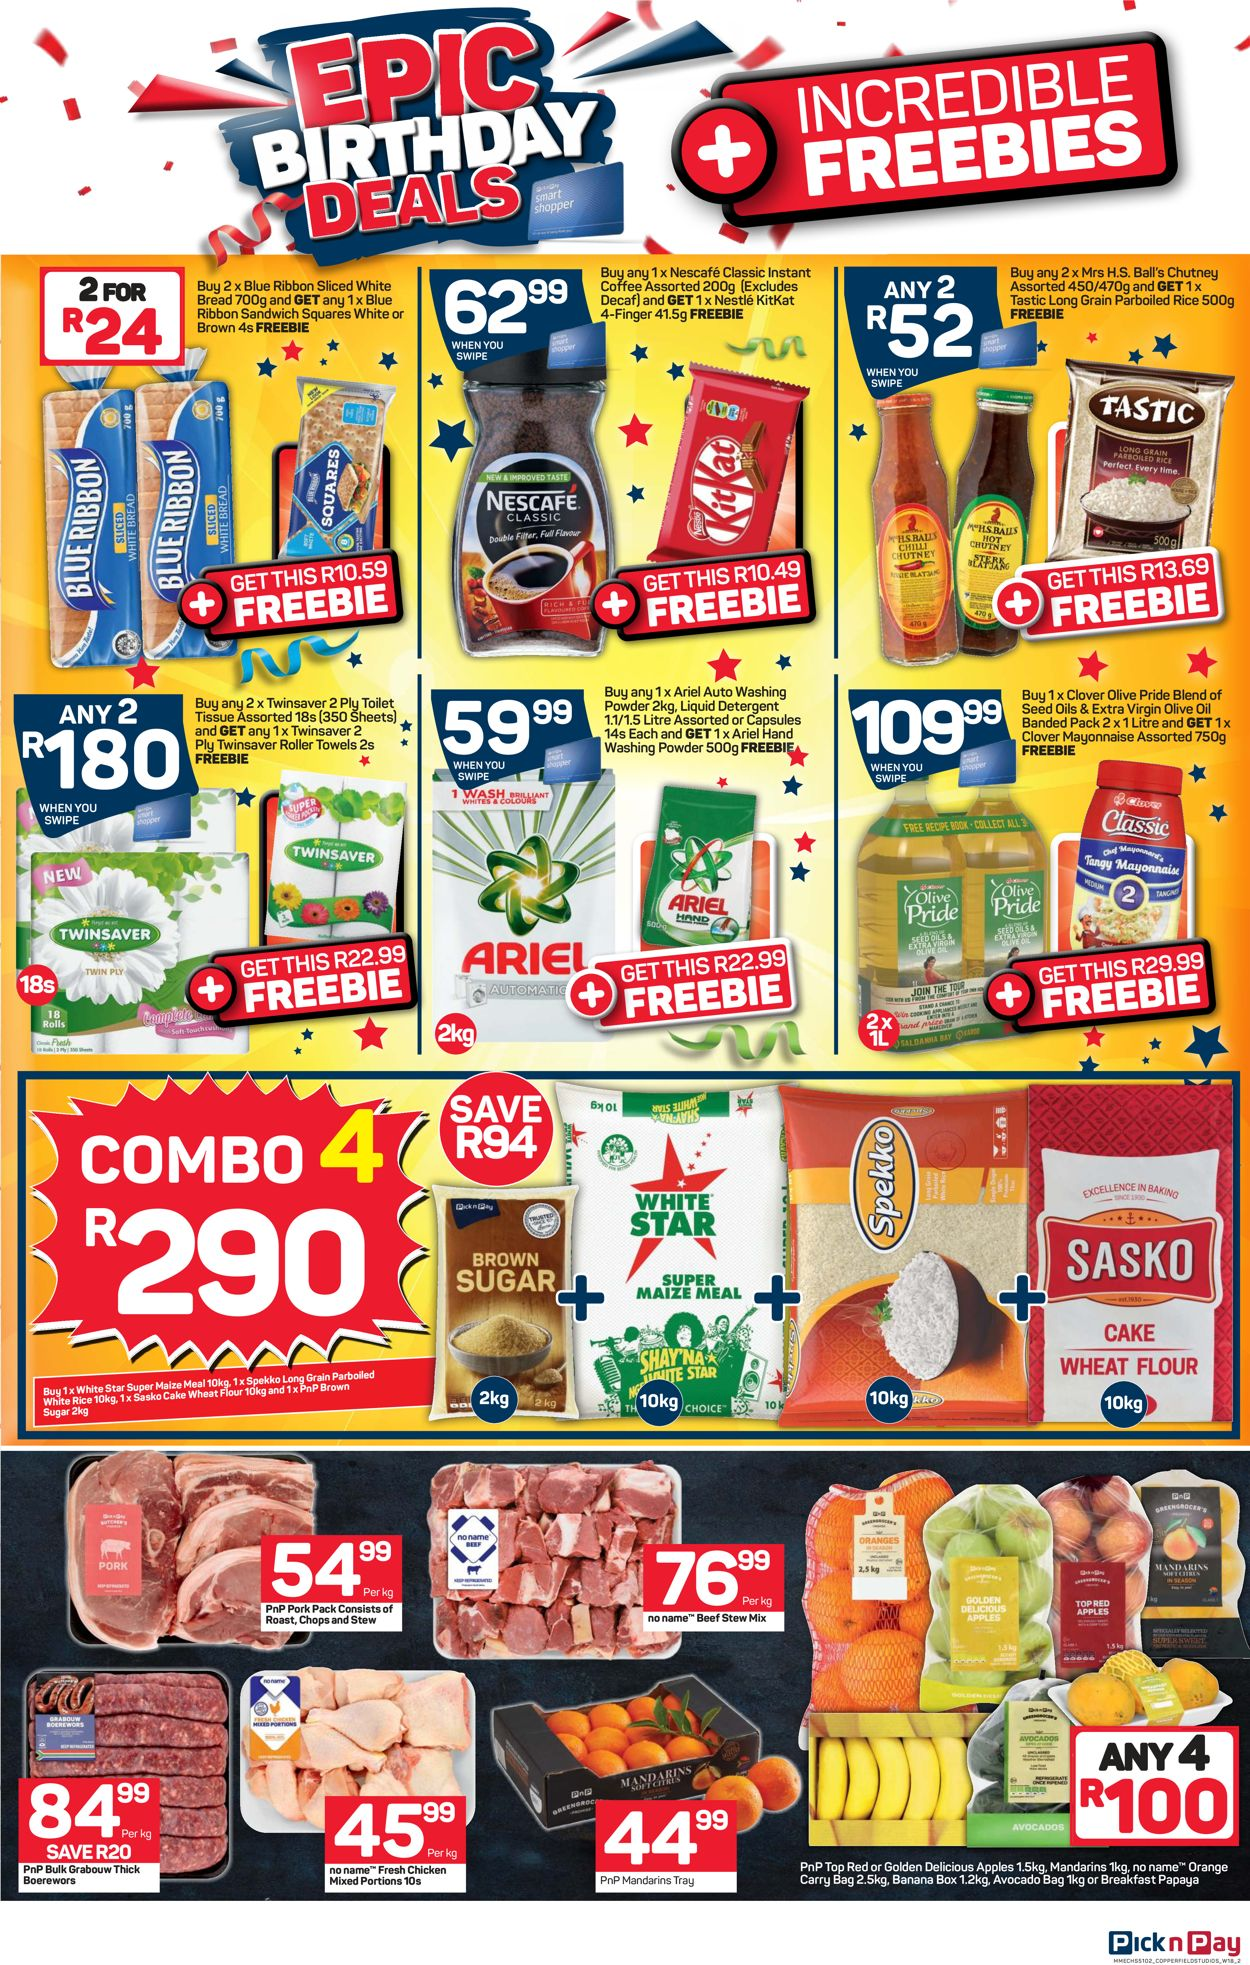 Pick n Pay Catalogue - 2021/07/01-2021/07/04 (Page 2)